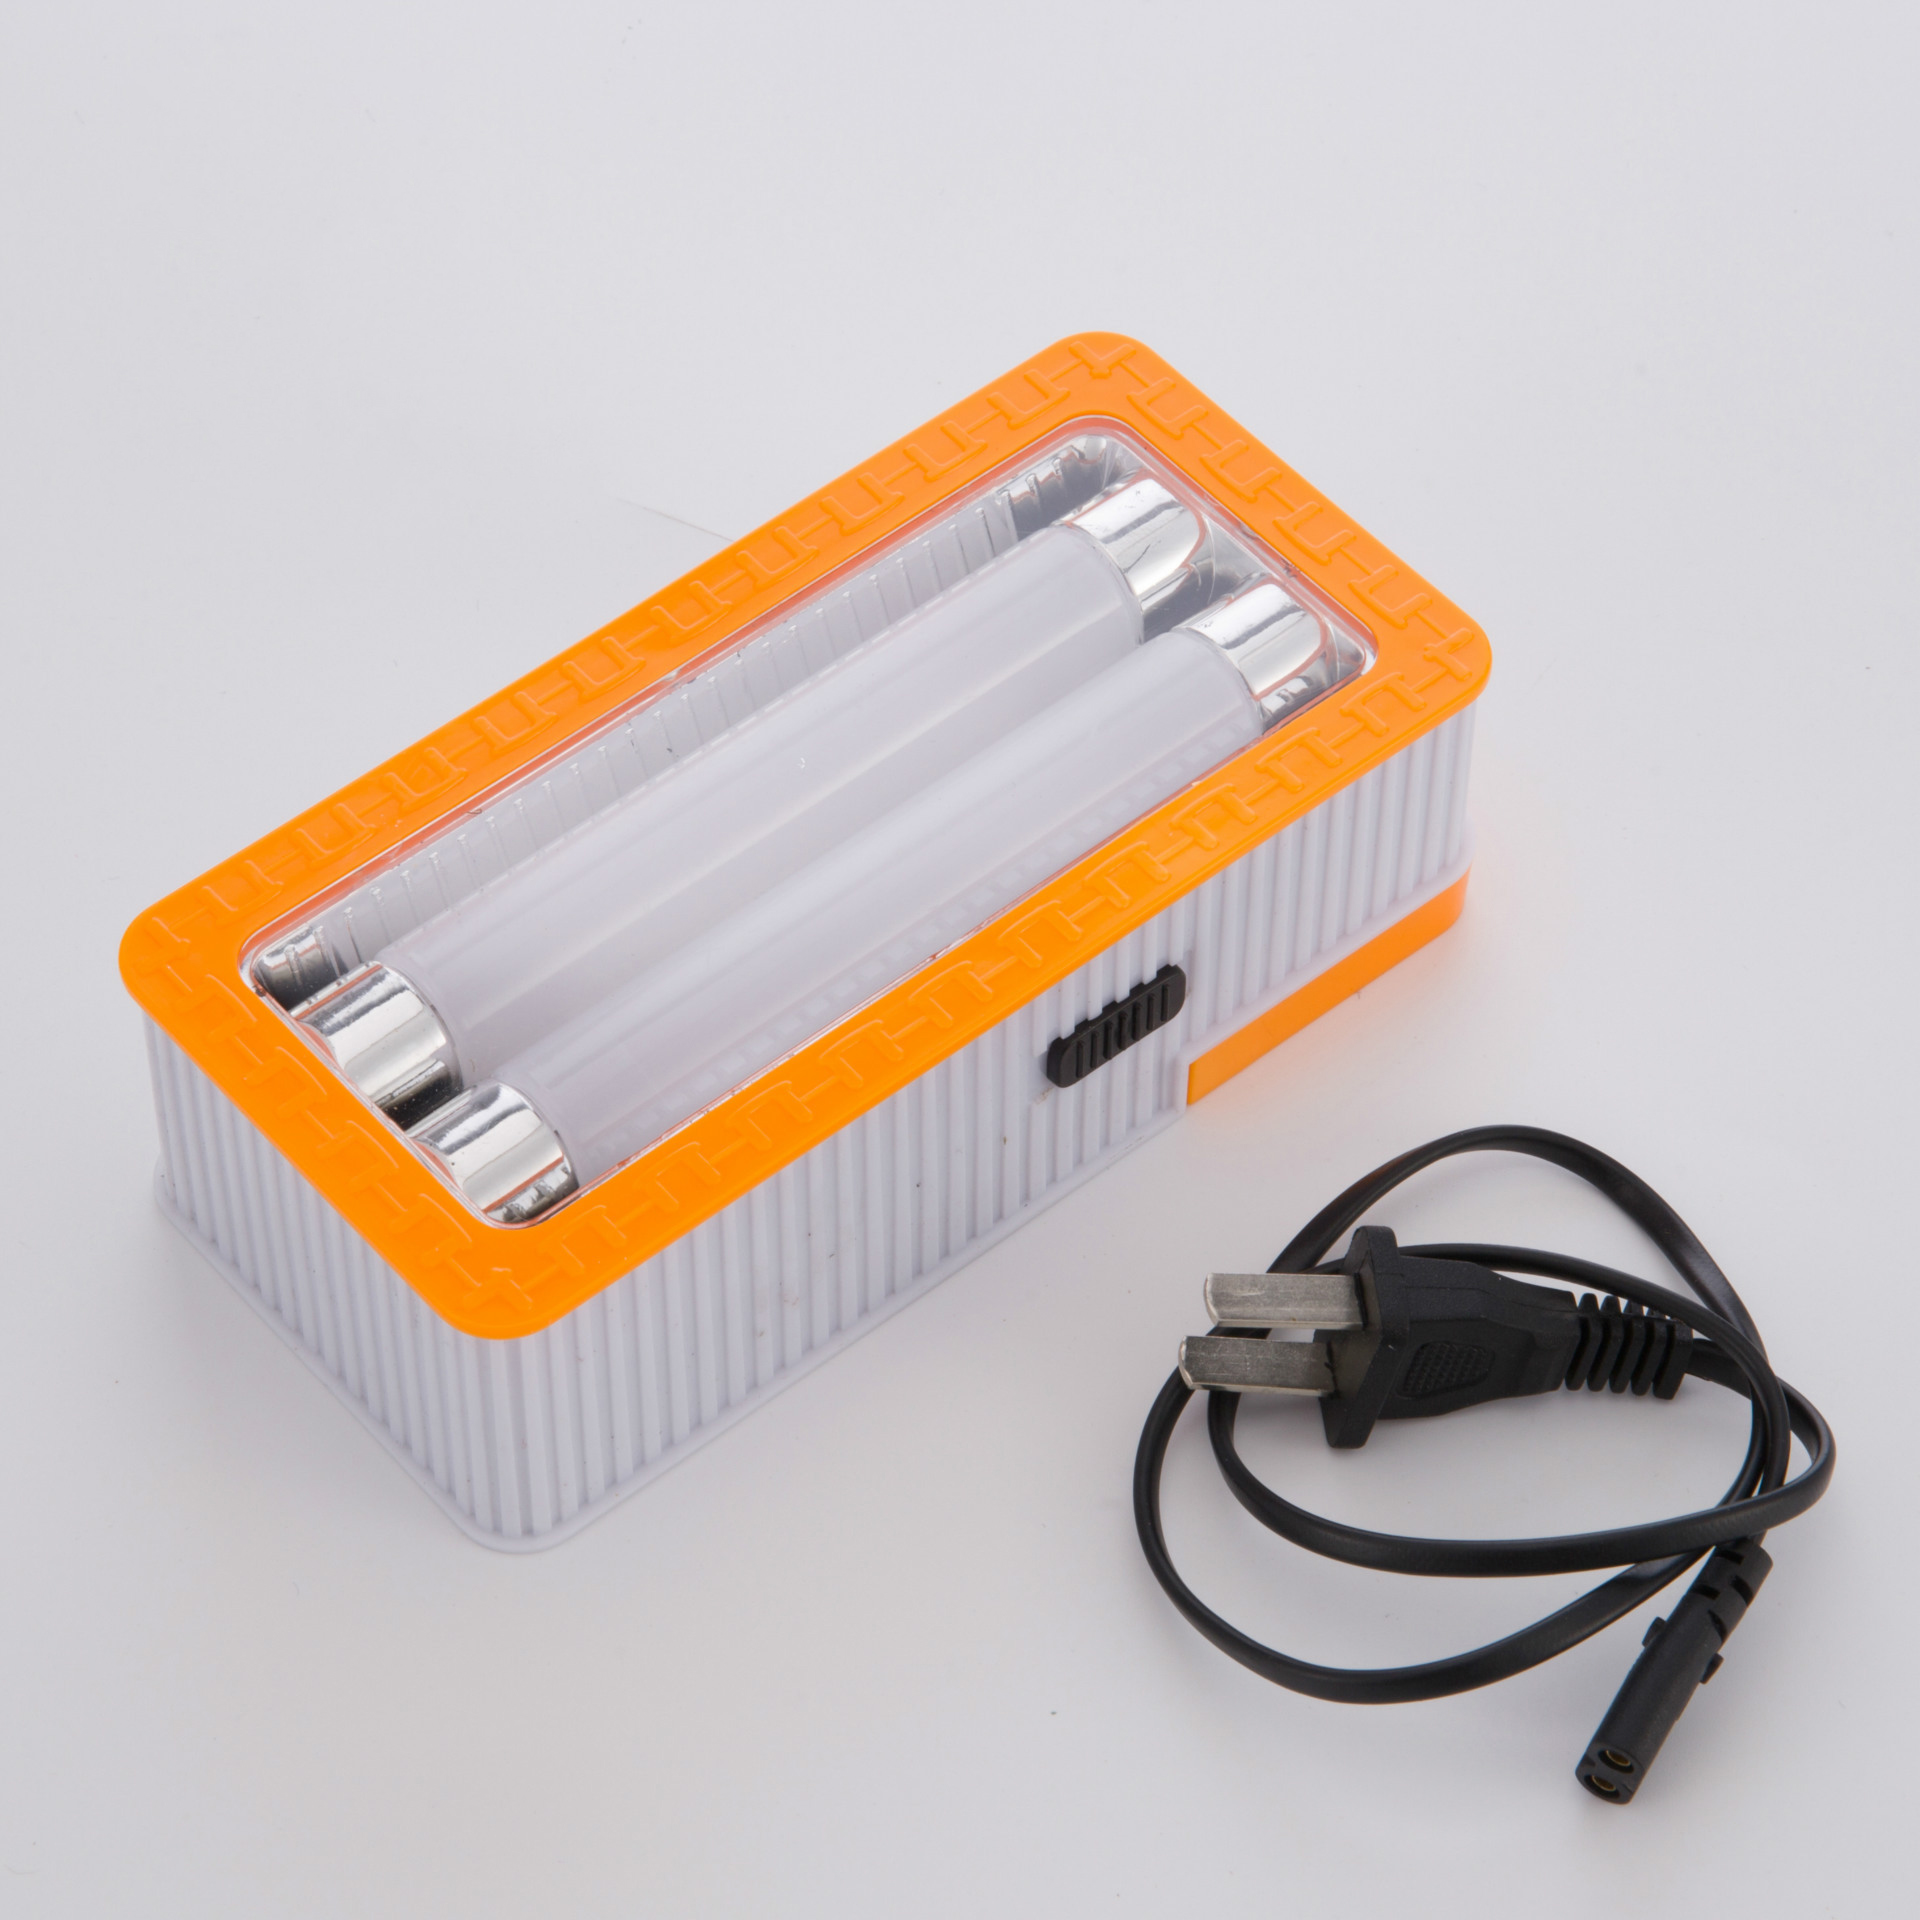 New led plastic portable outdoor wall-mounted mini flashlight